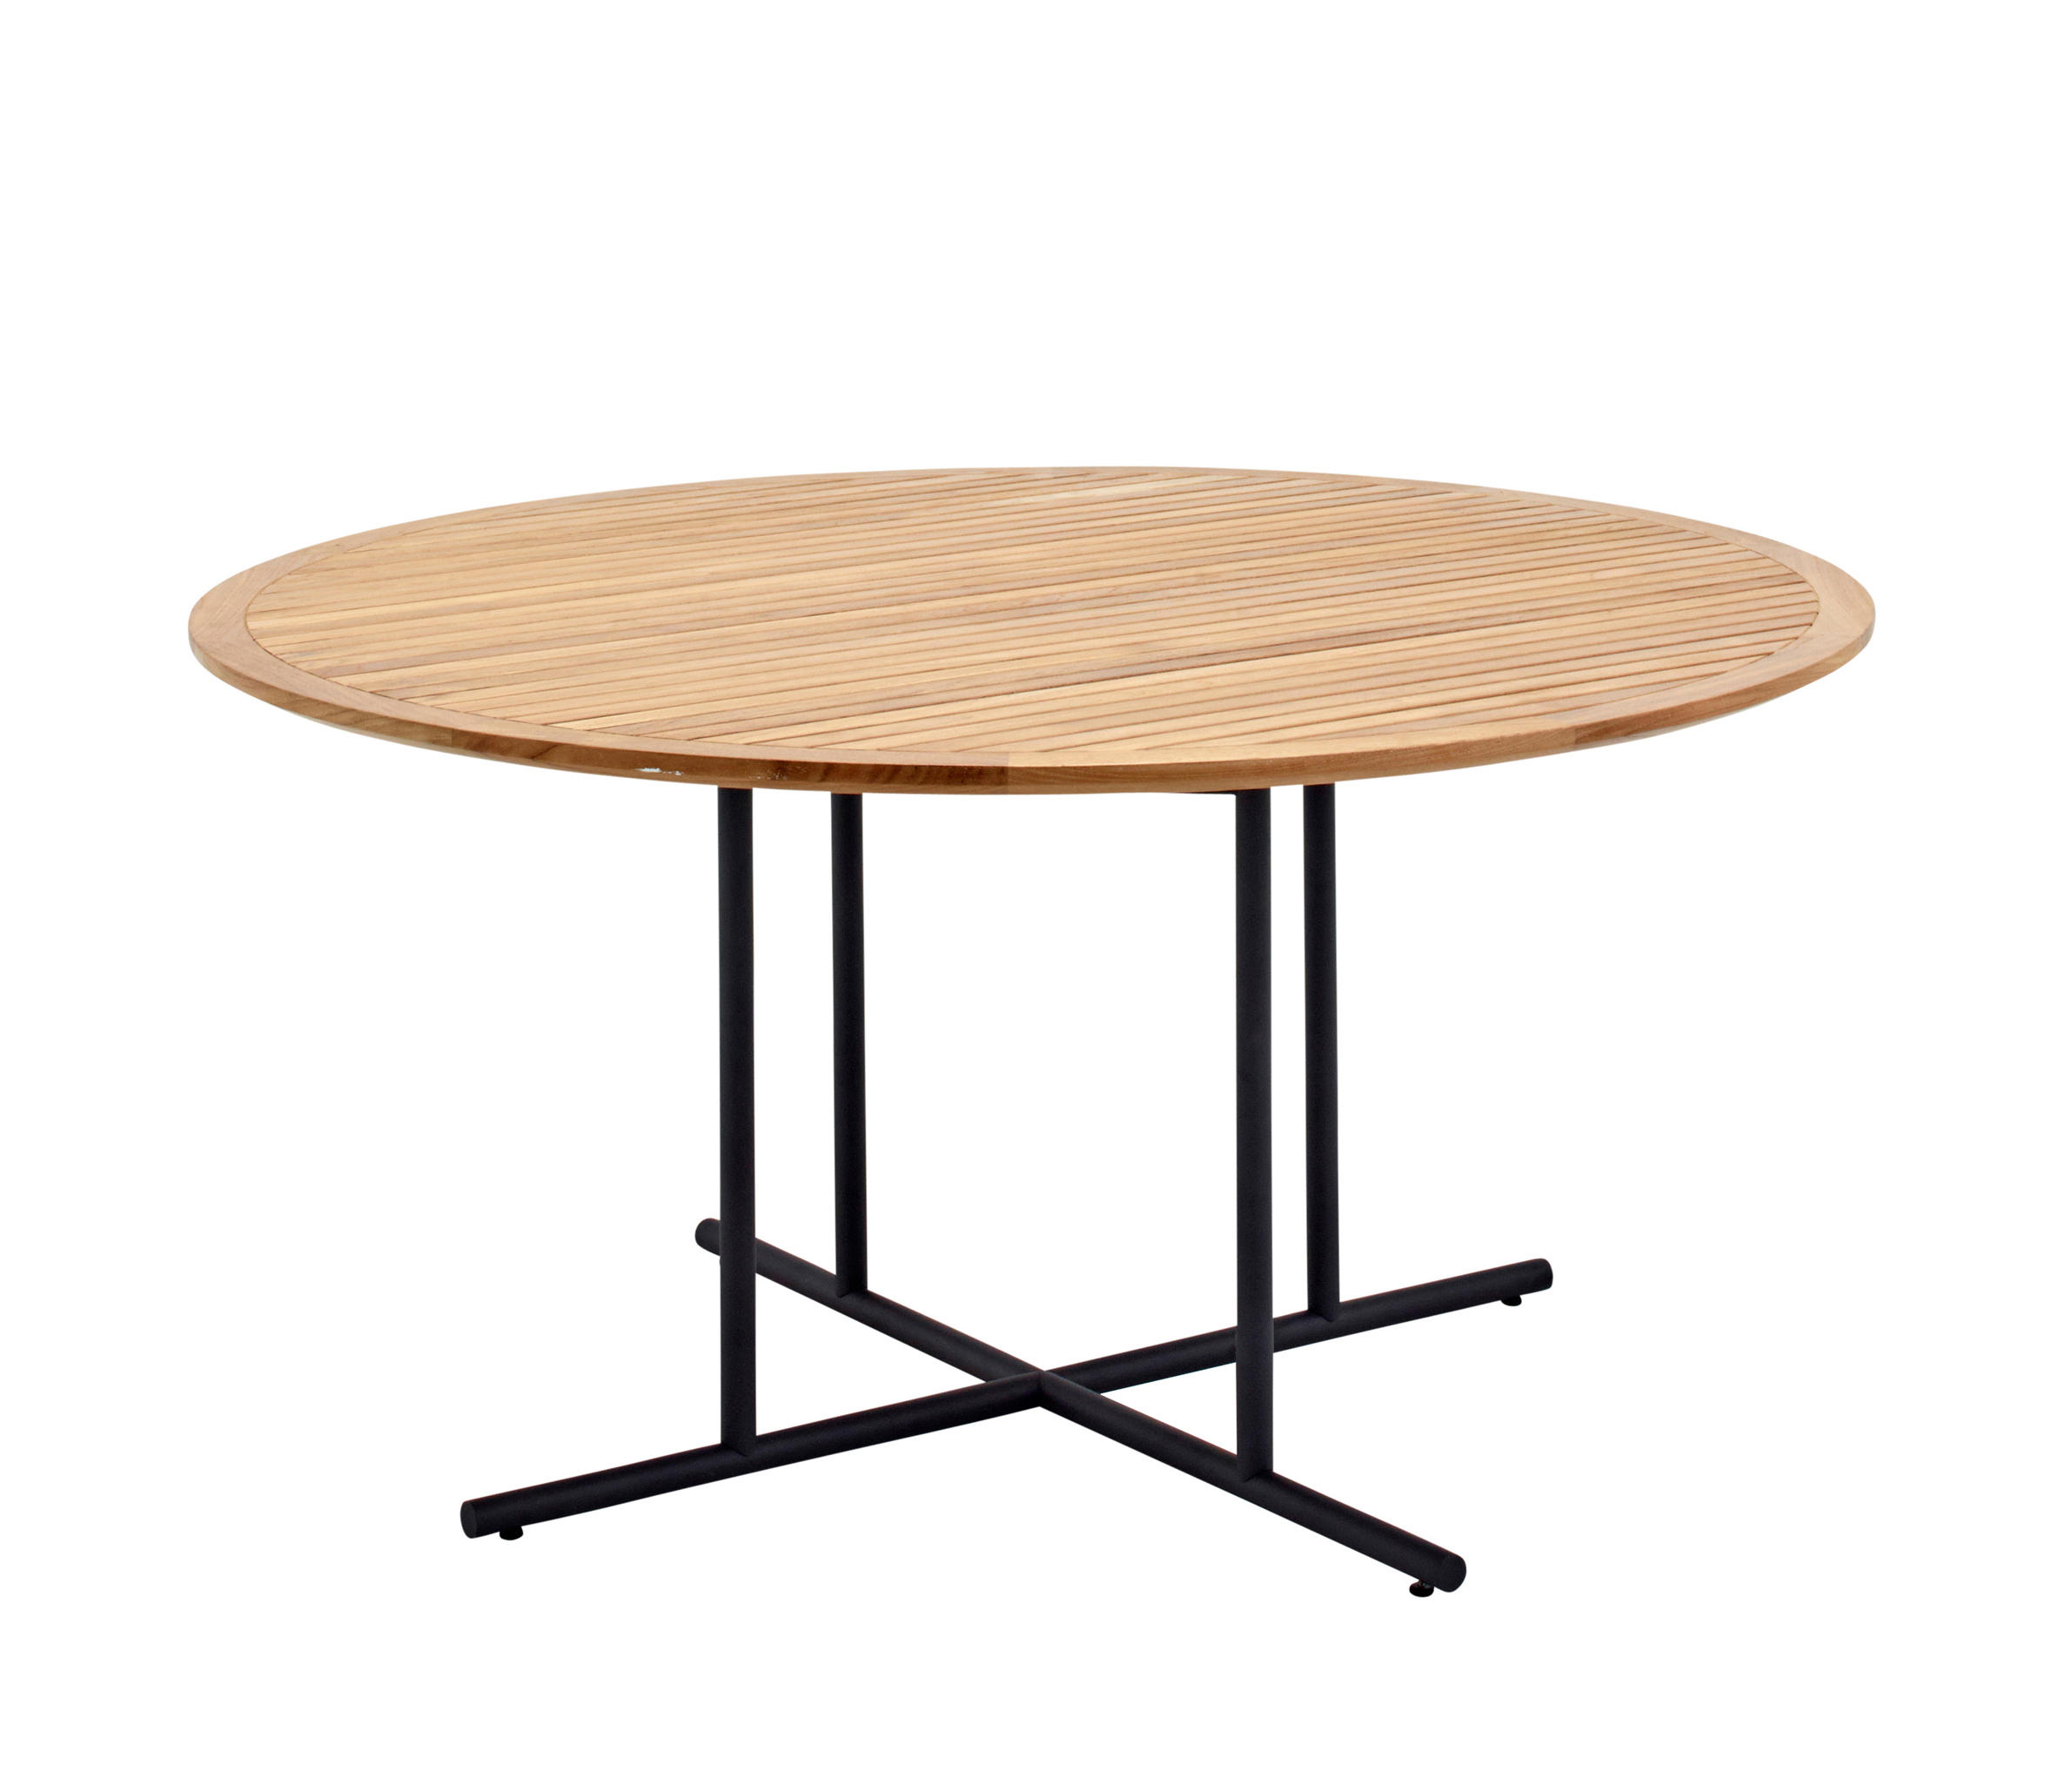 Whirl Dining Table By Gloster Furniture GmbH | Dining Tables